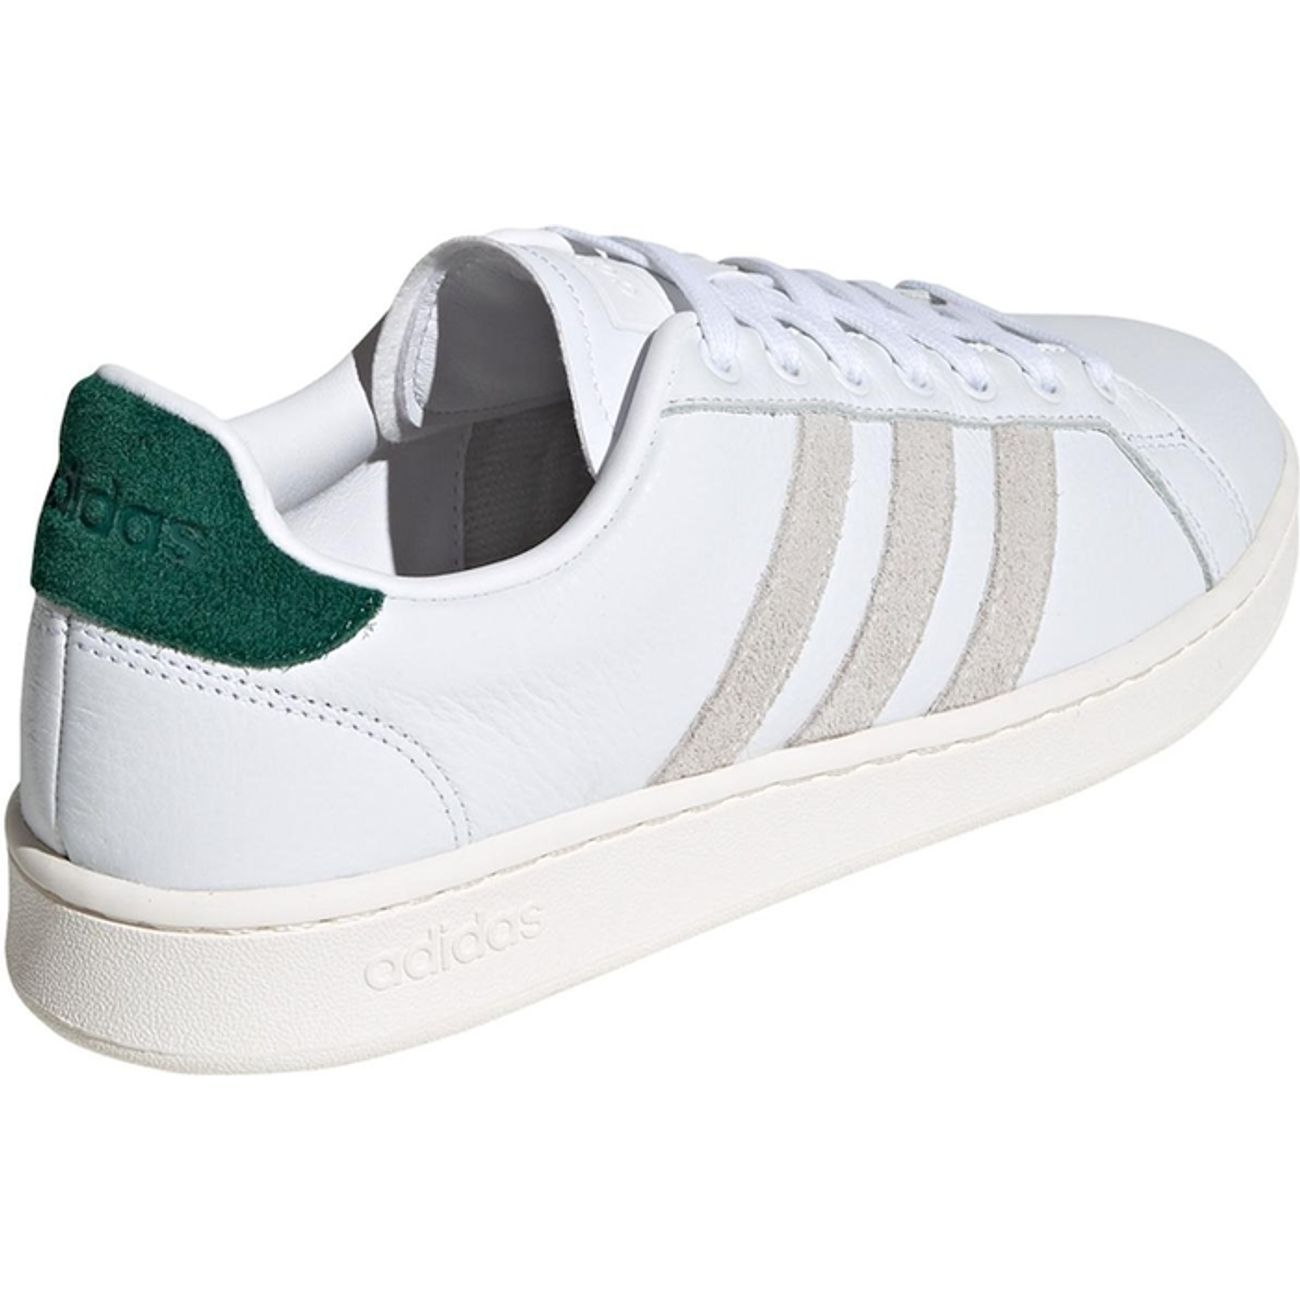 CHAUSSURES BASSES Loisirs homme ADIDAS GRAND COURT